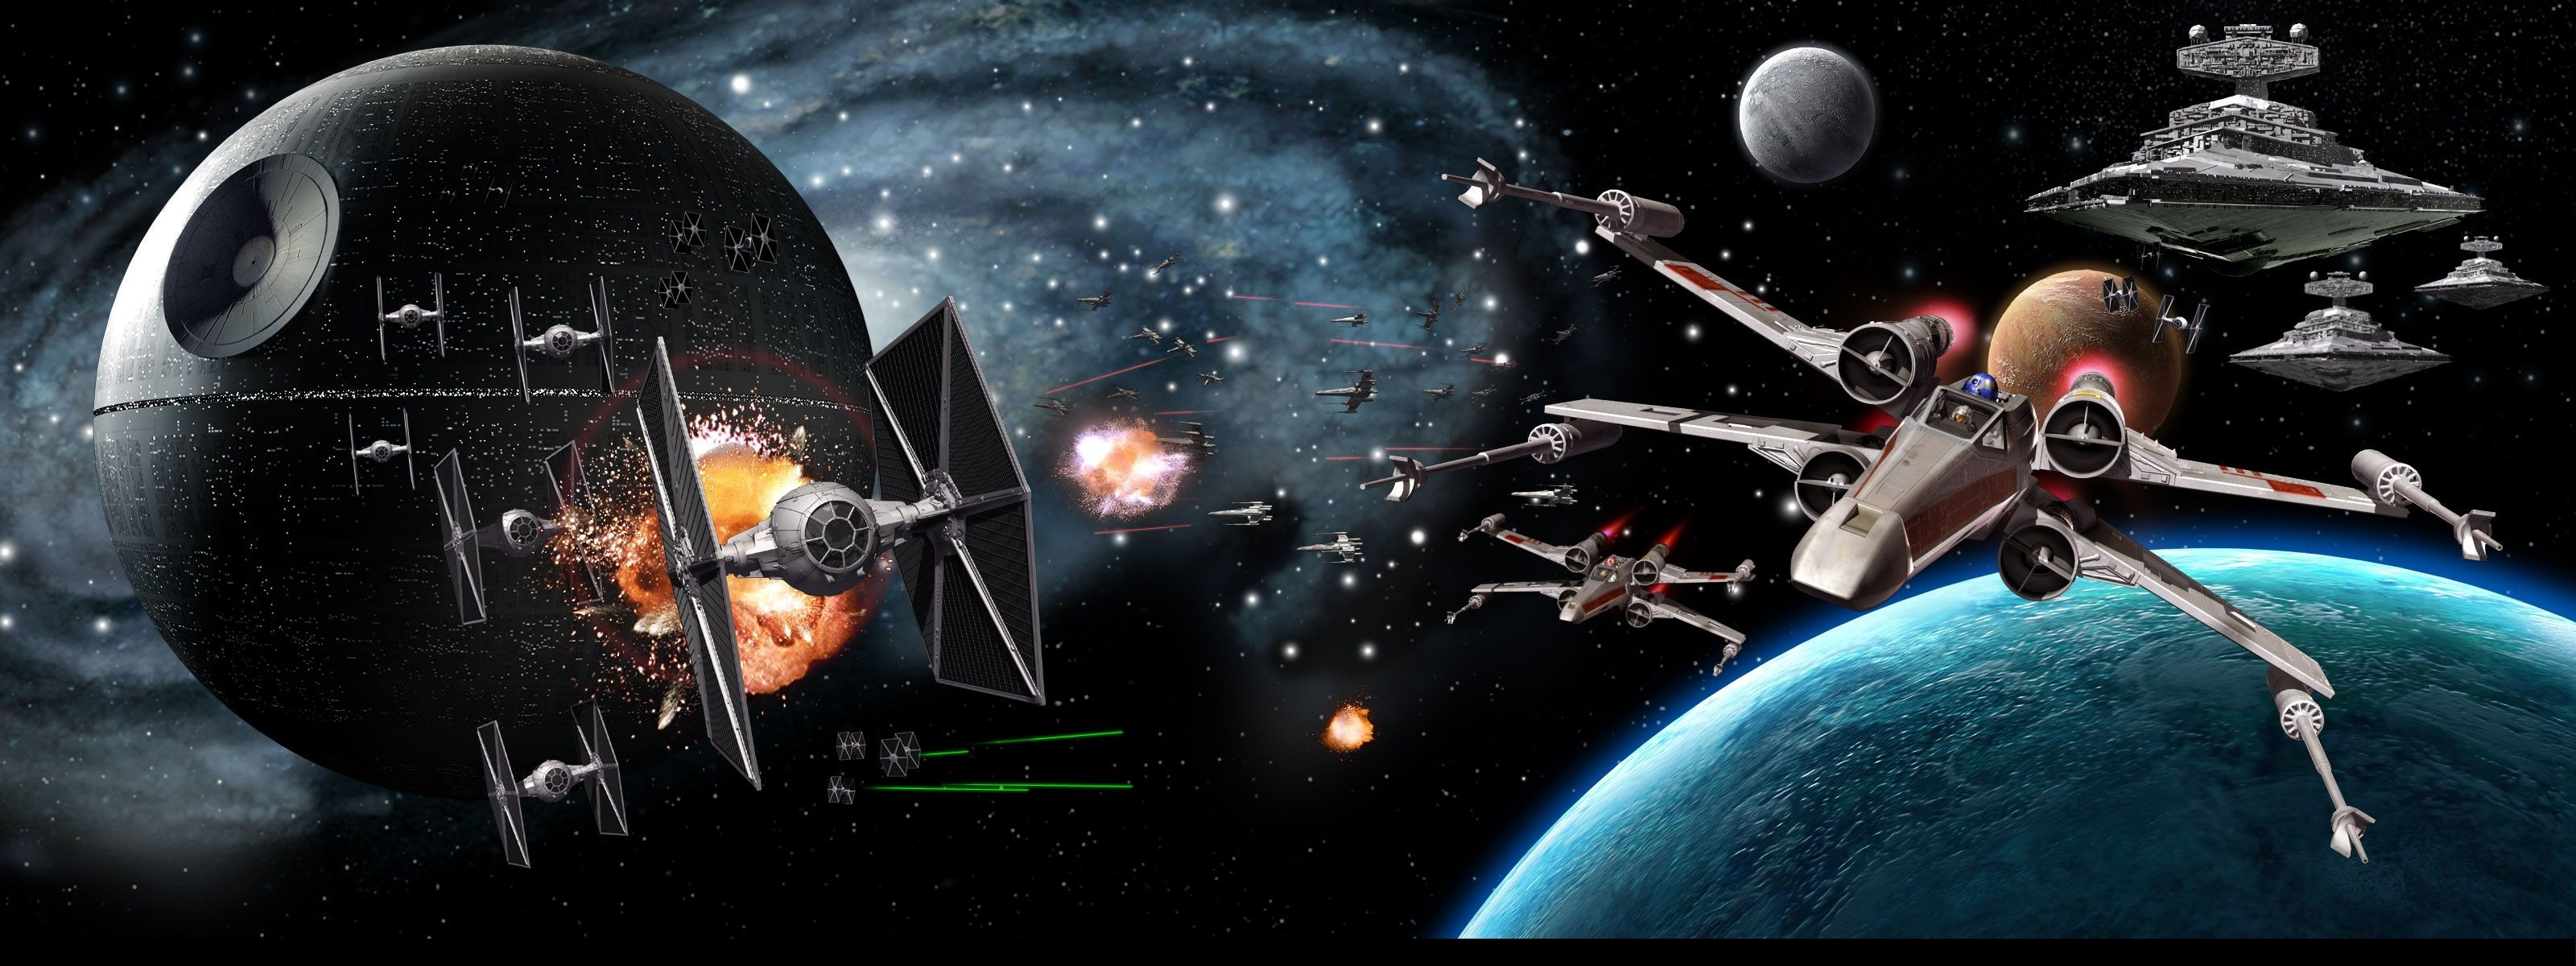 Triple Monitor Star Wars Wallpaper 30 1018059 Png Images Pngio